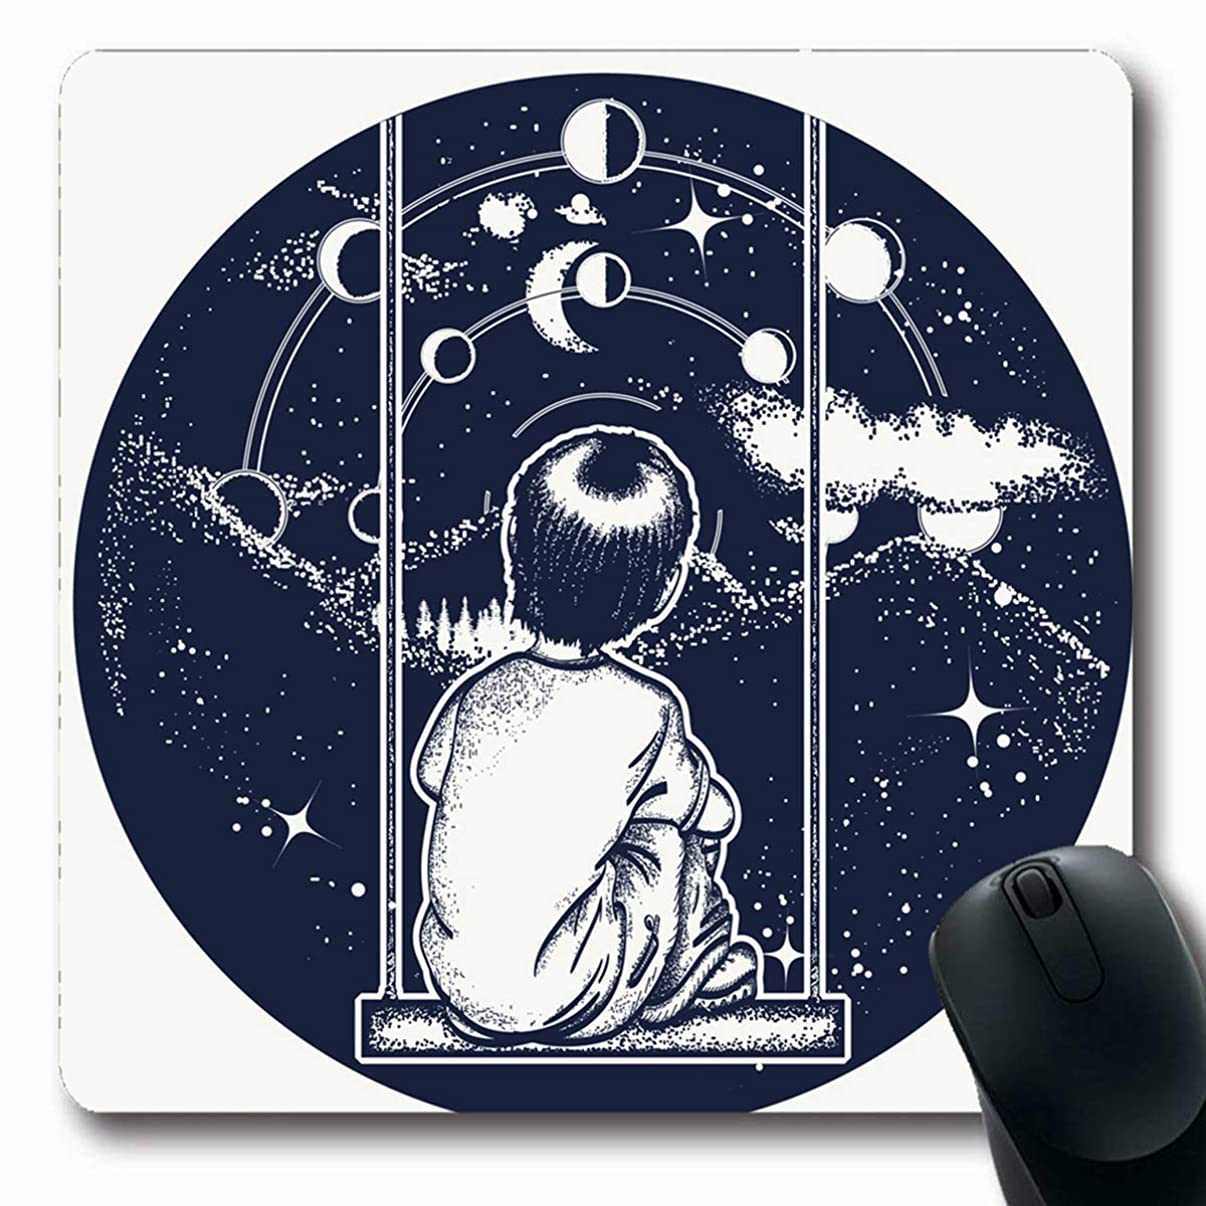 LifeCO Computer Mousepads Engraving Boy On Swing Mountains Dreamer Tattoo in Looks Motivation at Stars Poetry Psychology Oblong Shape 7.9 x 9.5 Inches Oblong Gaming Mouse Pad Non-Slip Rubber